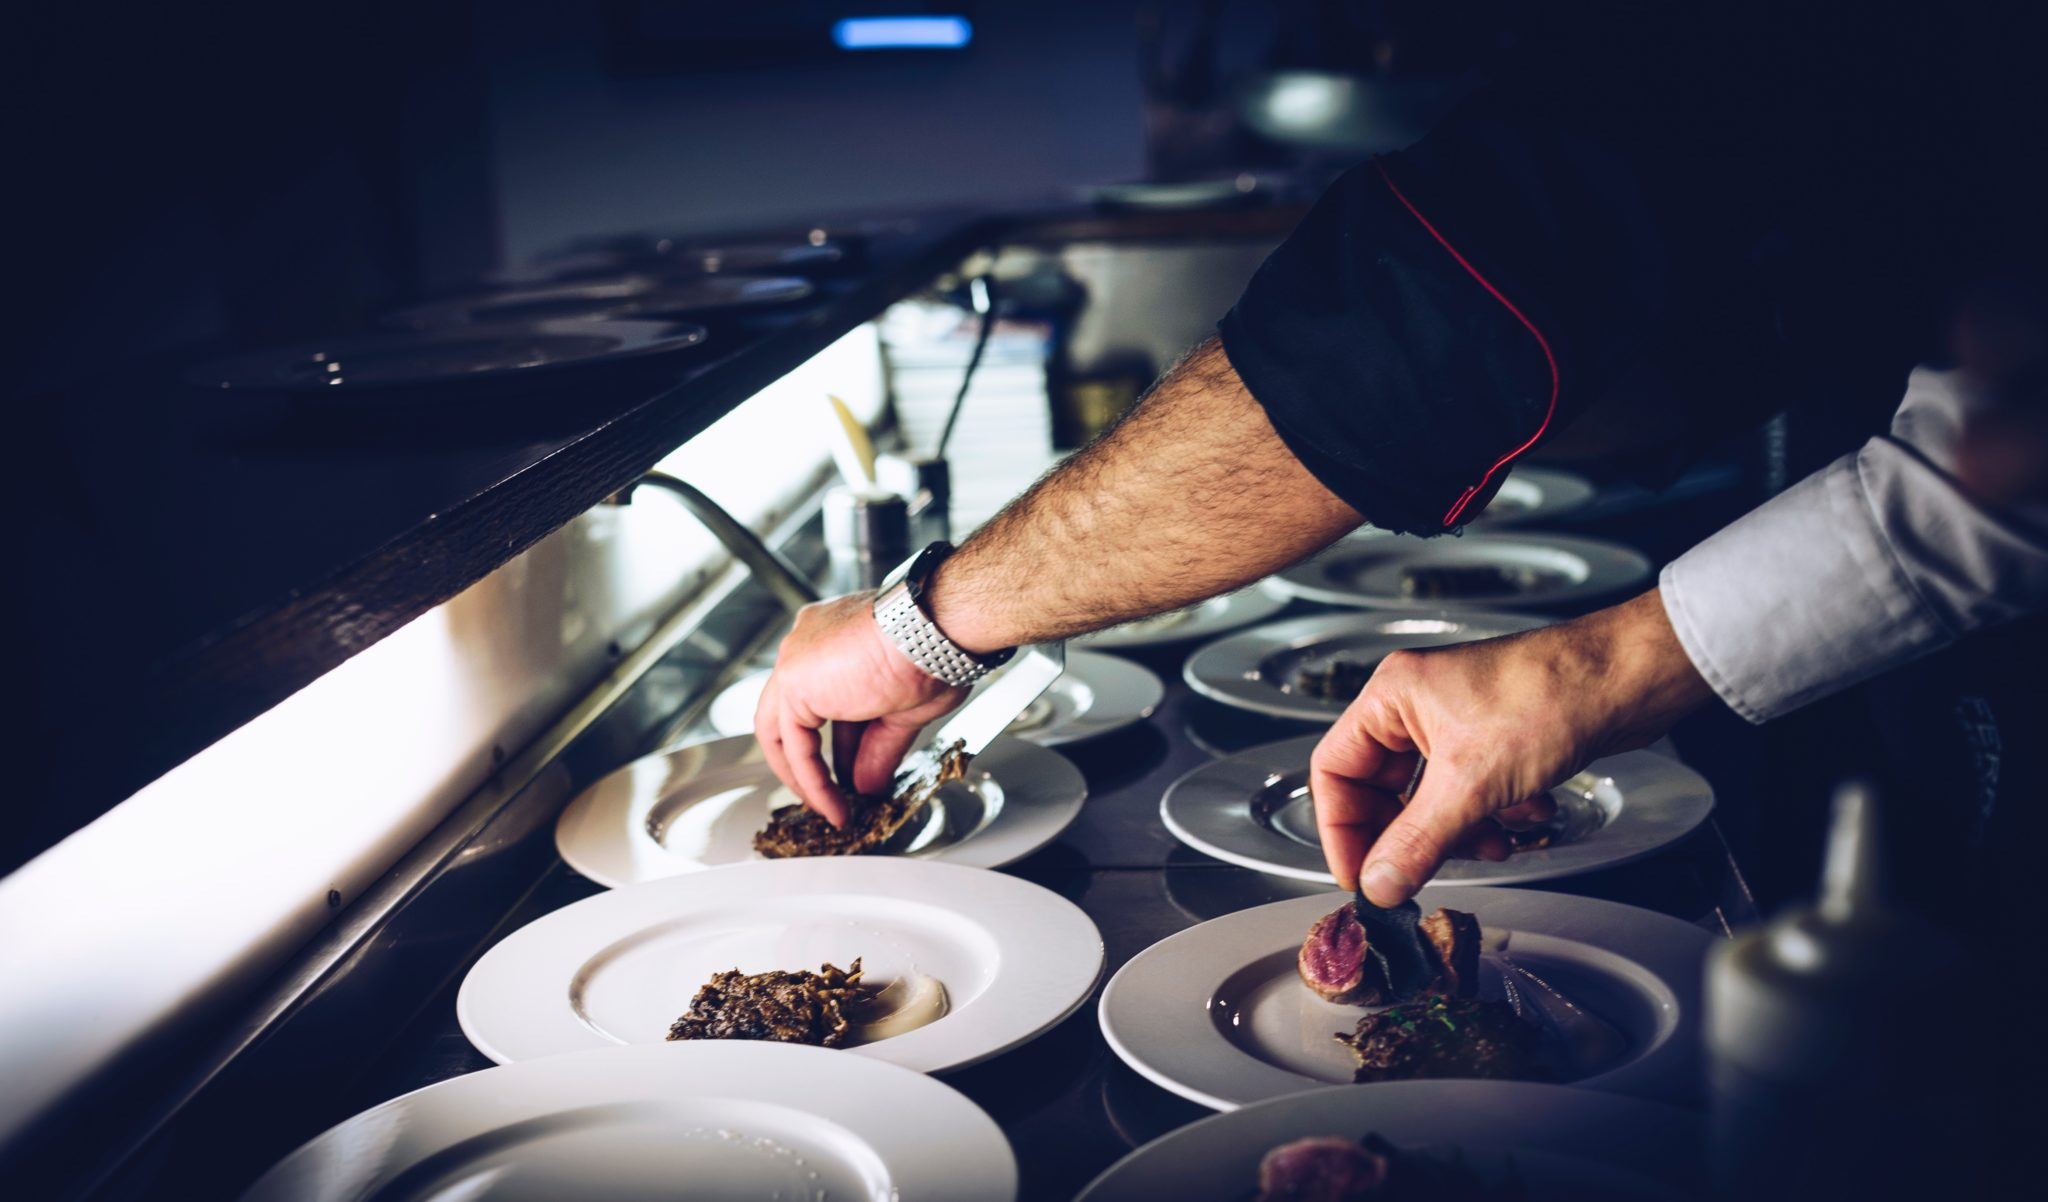 Productivity Tips for Work: 6 Lessons From Chefs